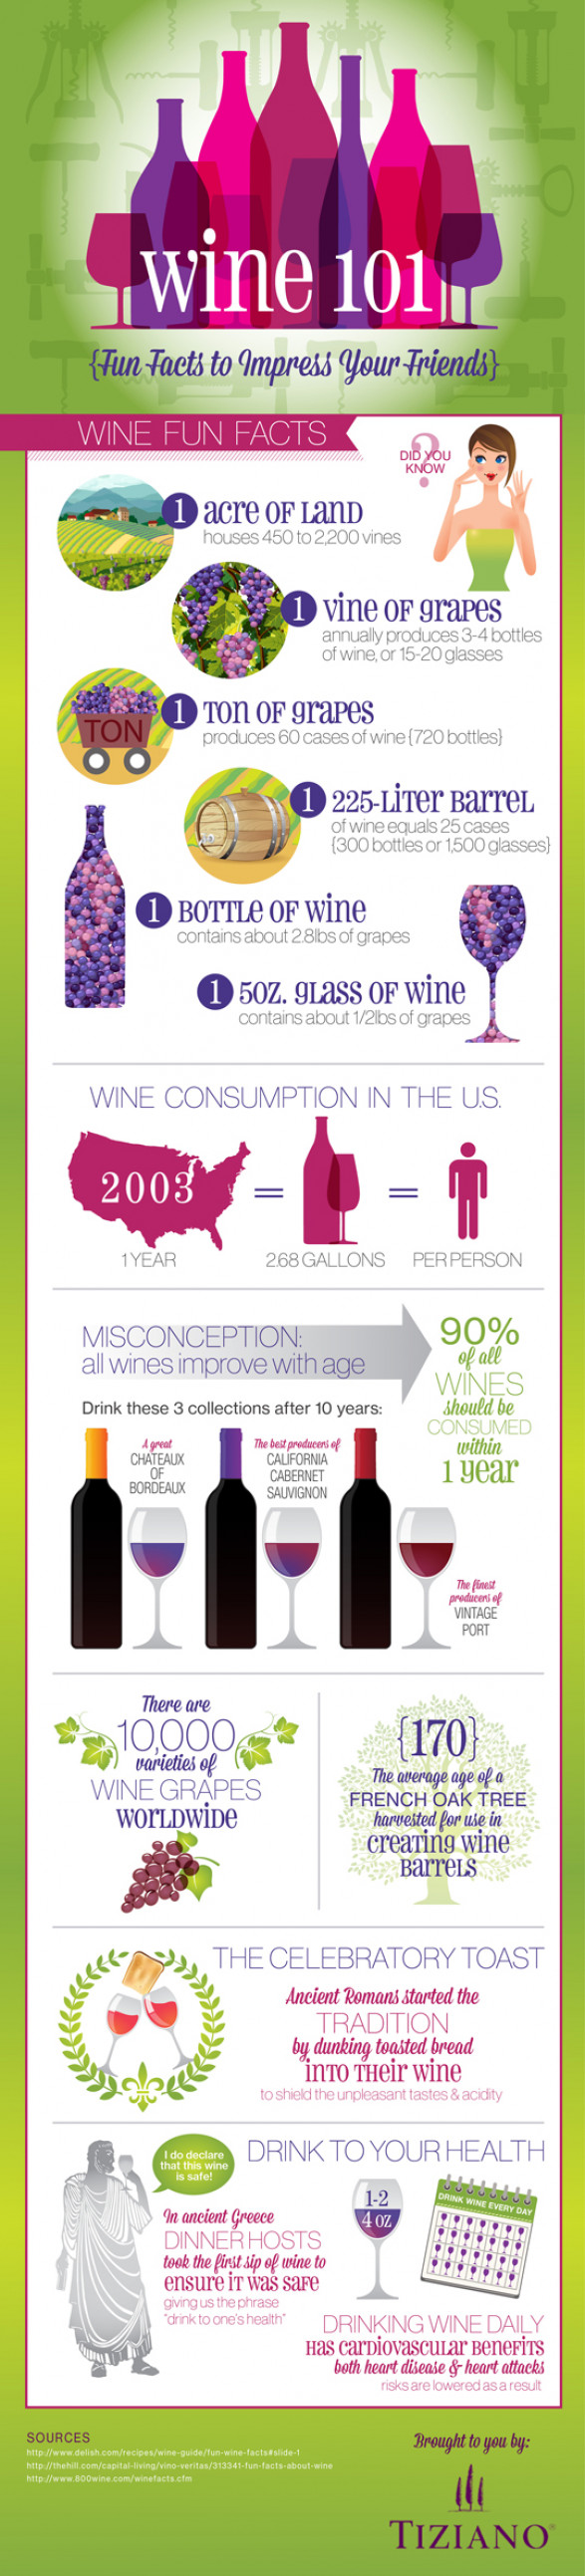 Wine 101: Fun Facts to Impress Your Friends